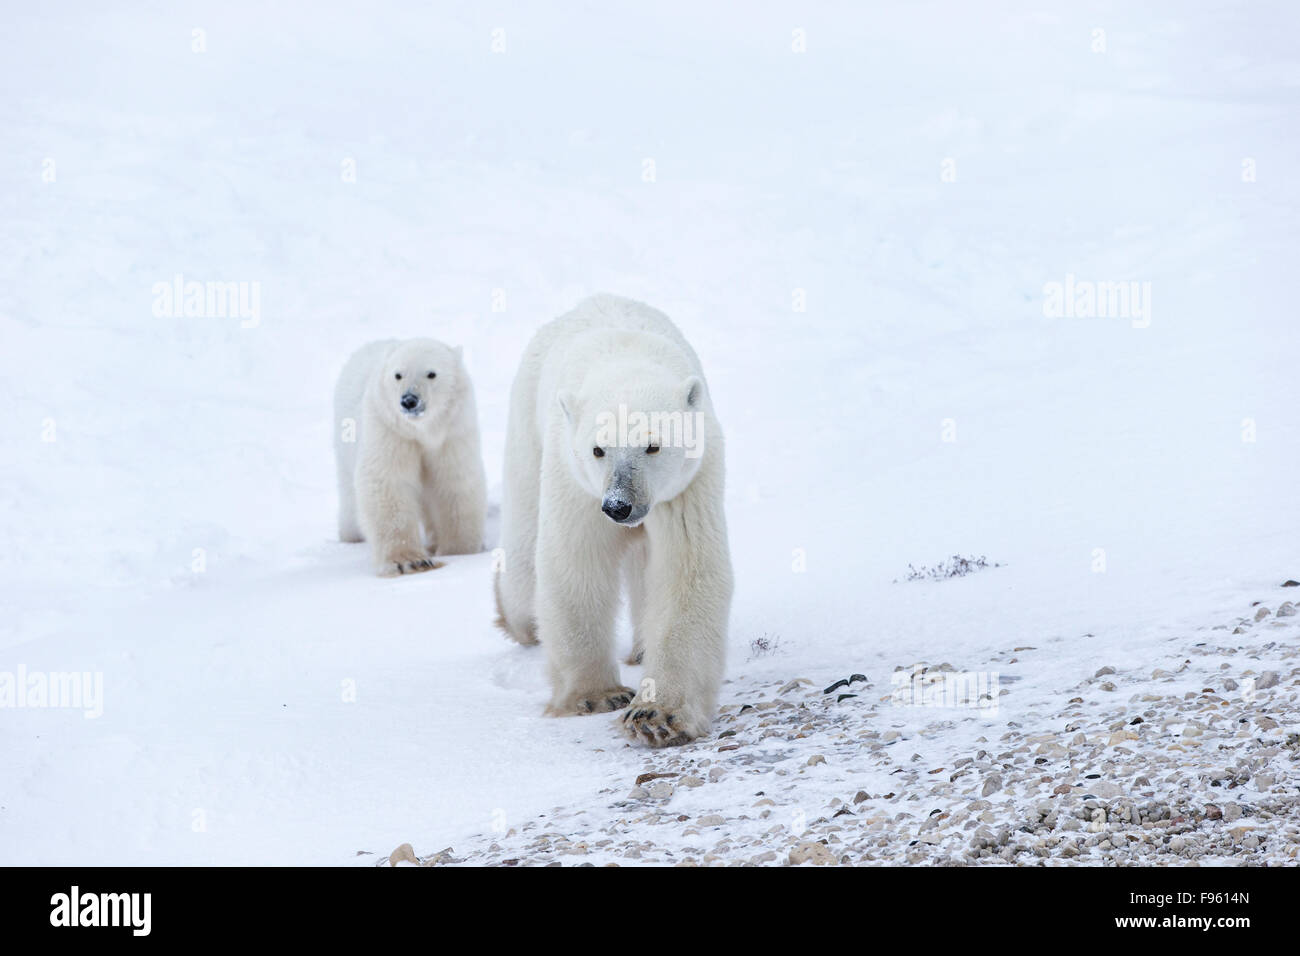 L'ours polaire (Ursus maritimus), femme et cub de l'année, le cap Churchill, Parc National de Wapusk, Photo Stock